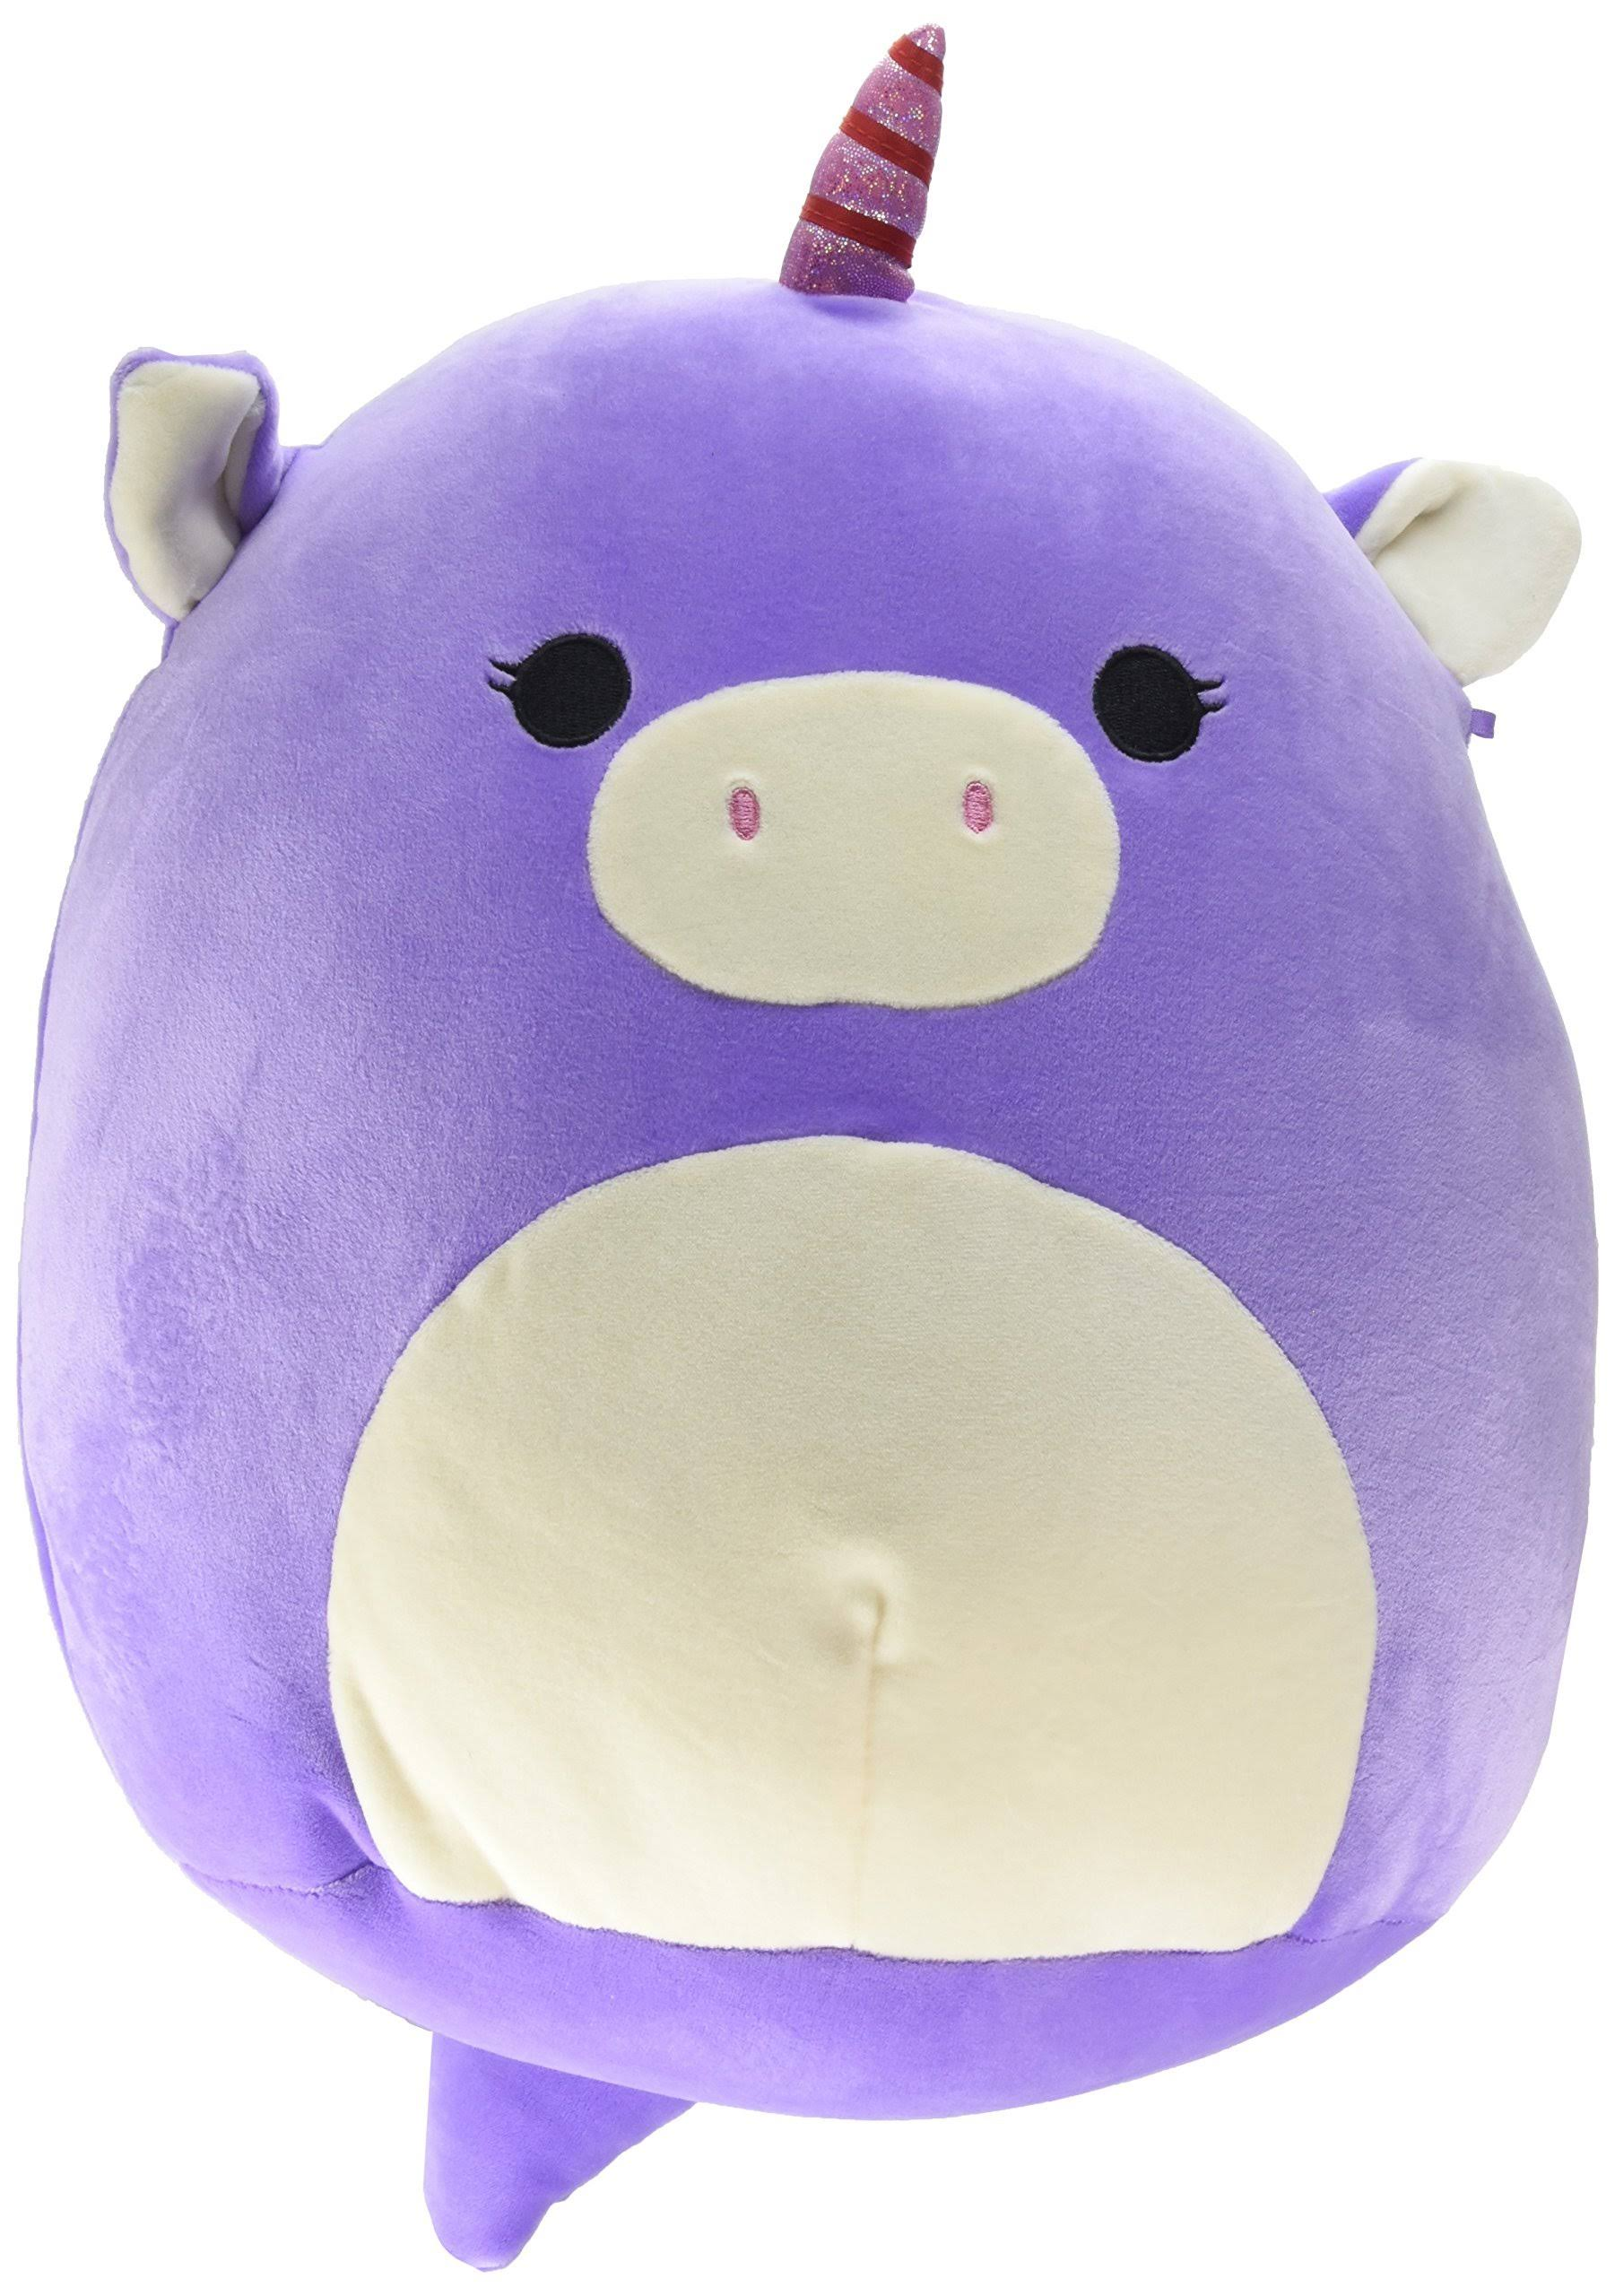 Kellytoy Squishmallow Unicorn Super Soft Plush Toy - Purple, 13""